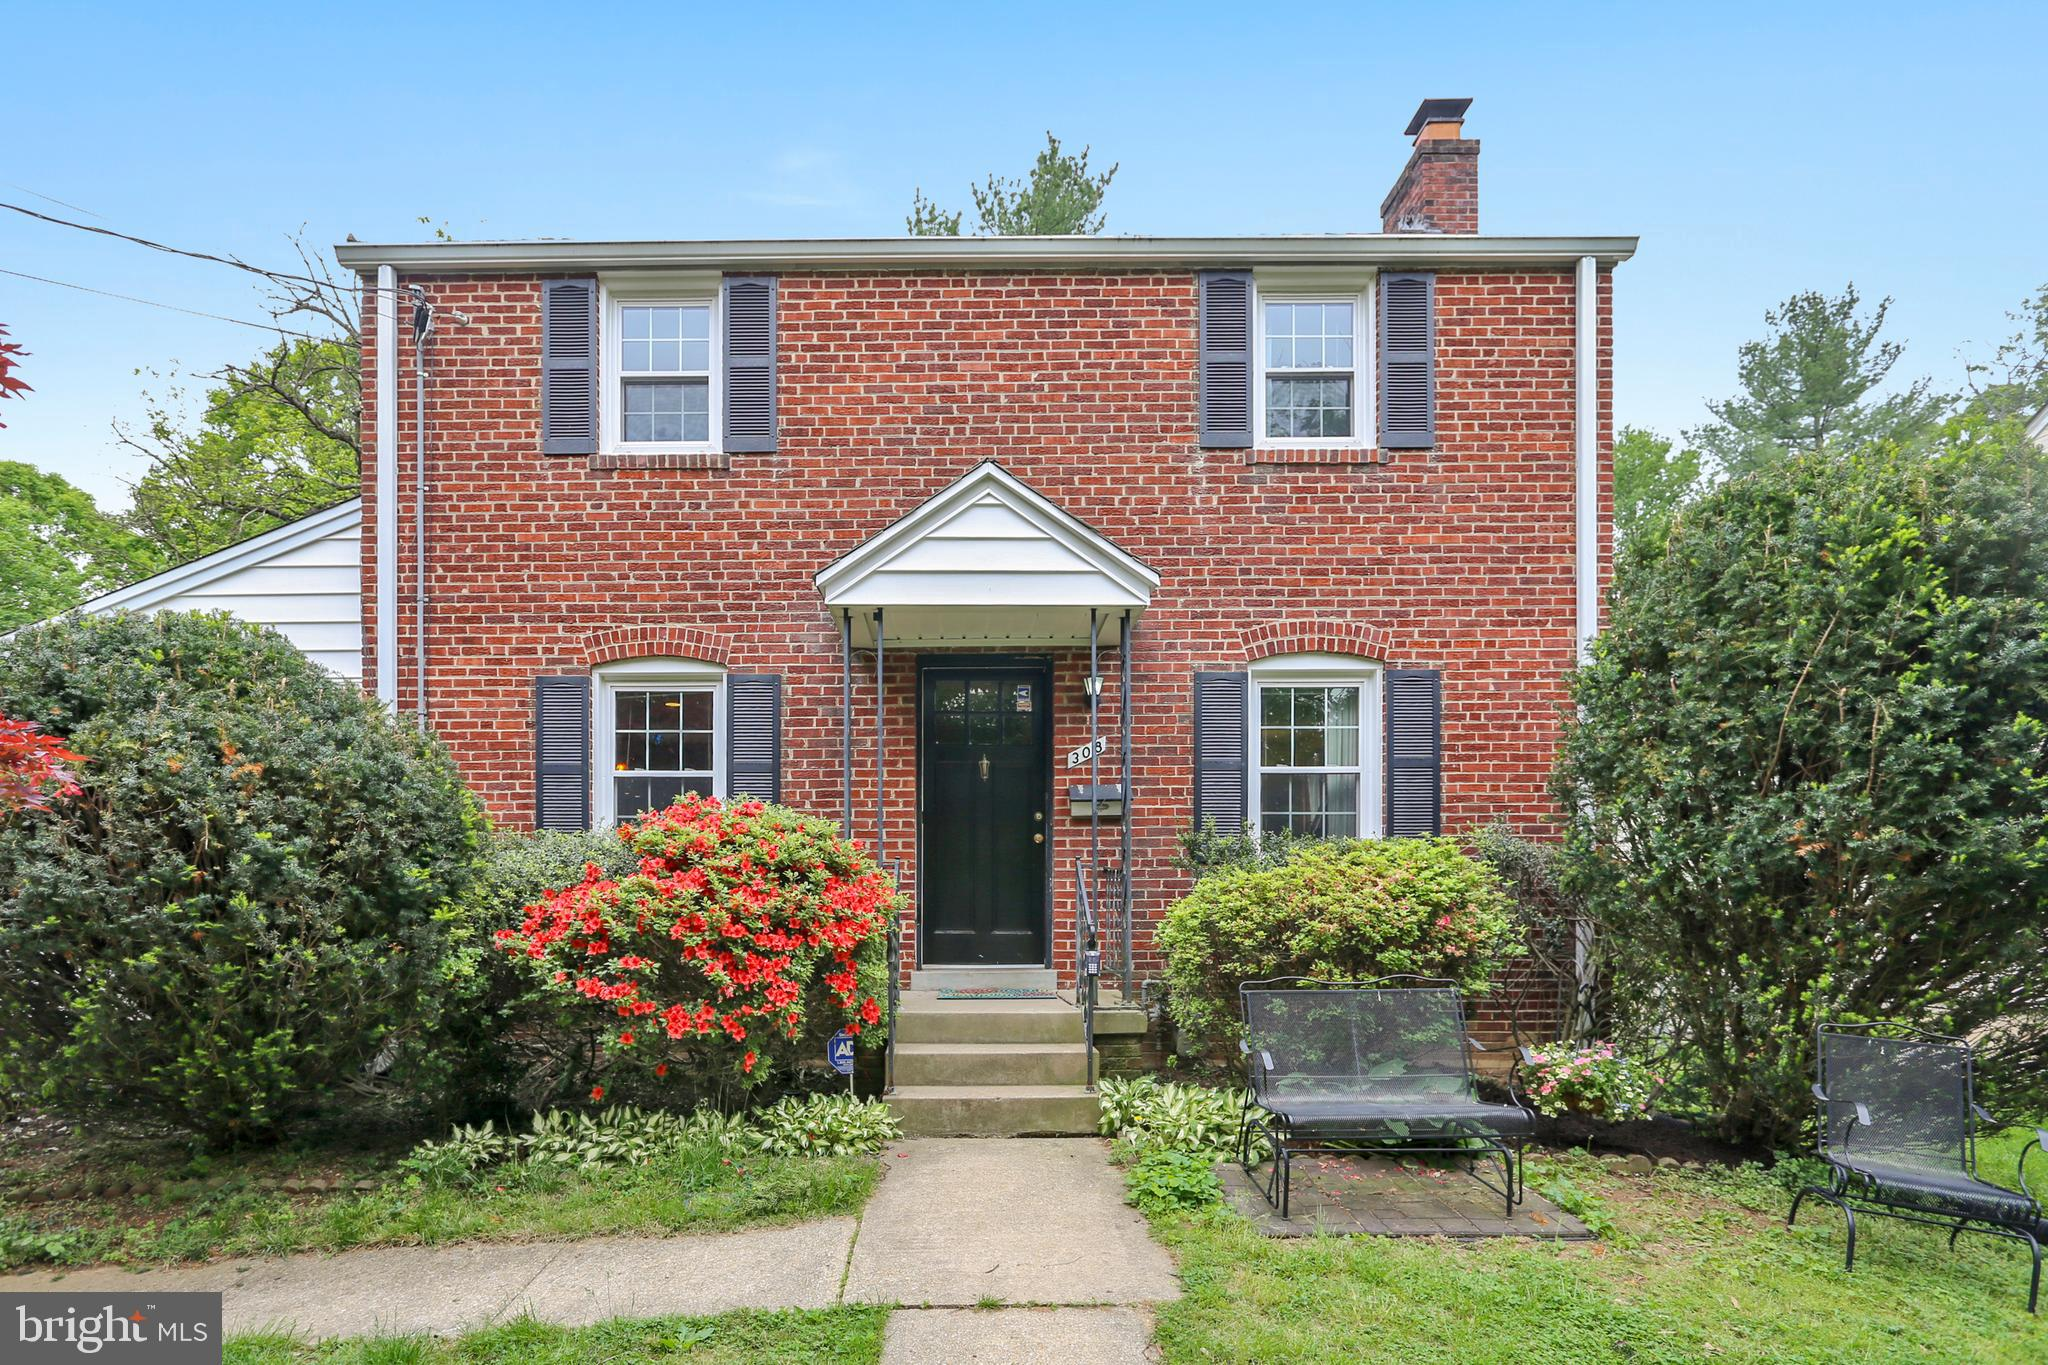 308 ST LAWRENCE DRIVE, SILVER SPRING, MD 20901